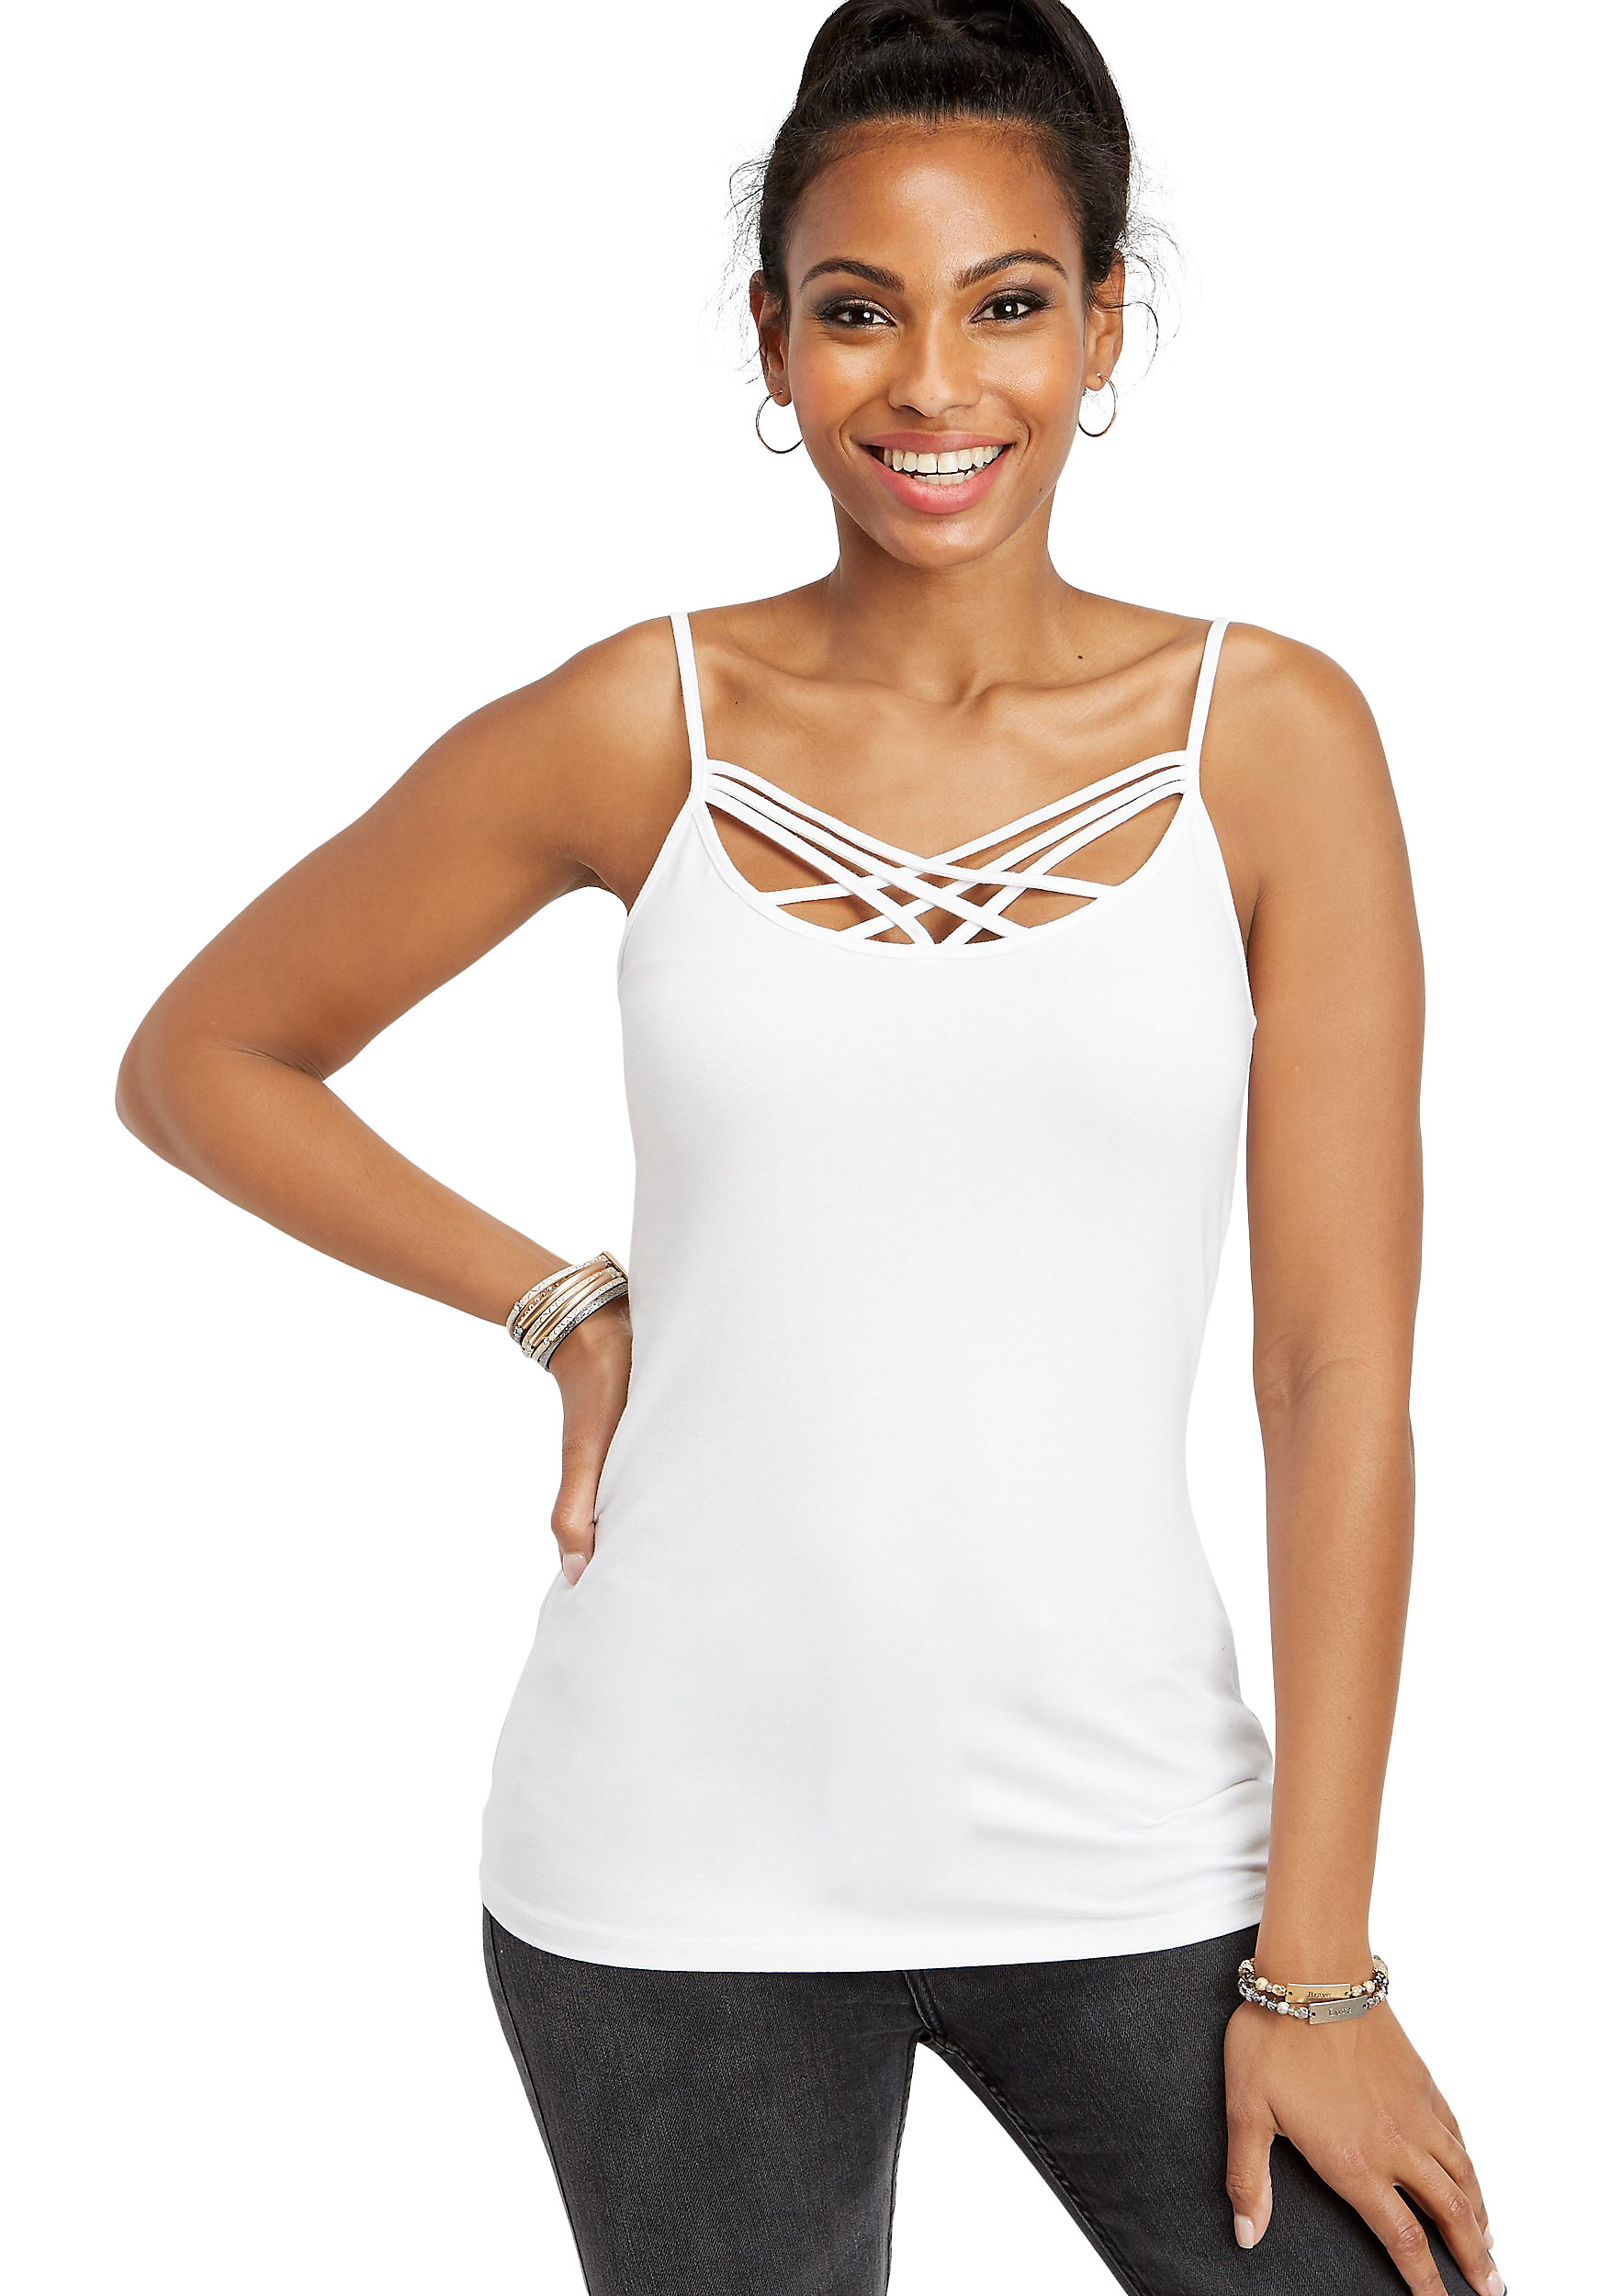 Maurices Strappy Neck Layering Tank - Women's Spaghetti Strap